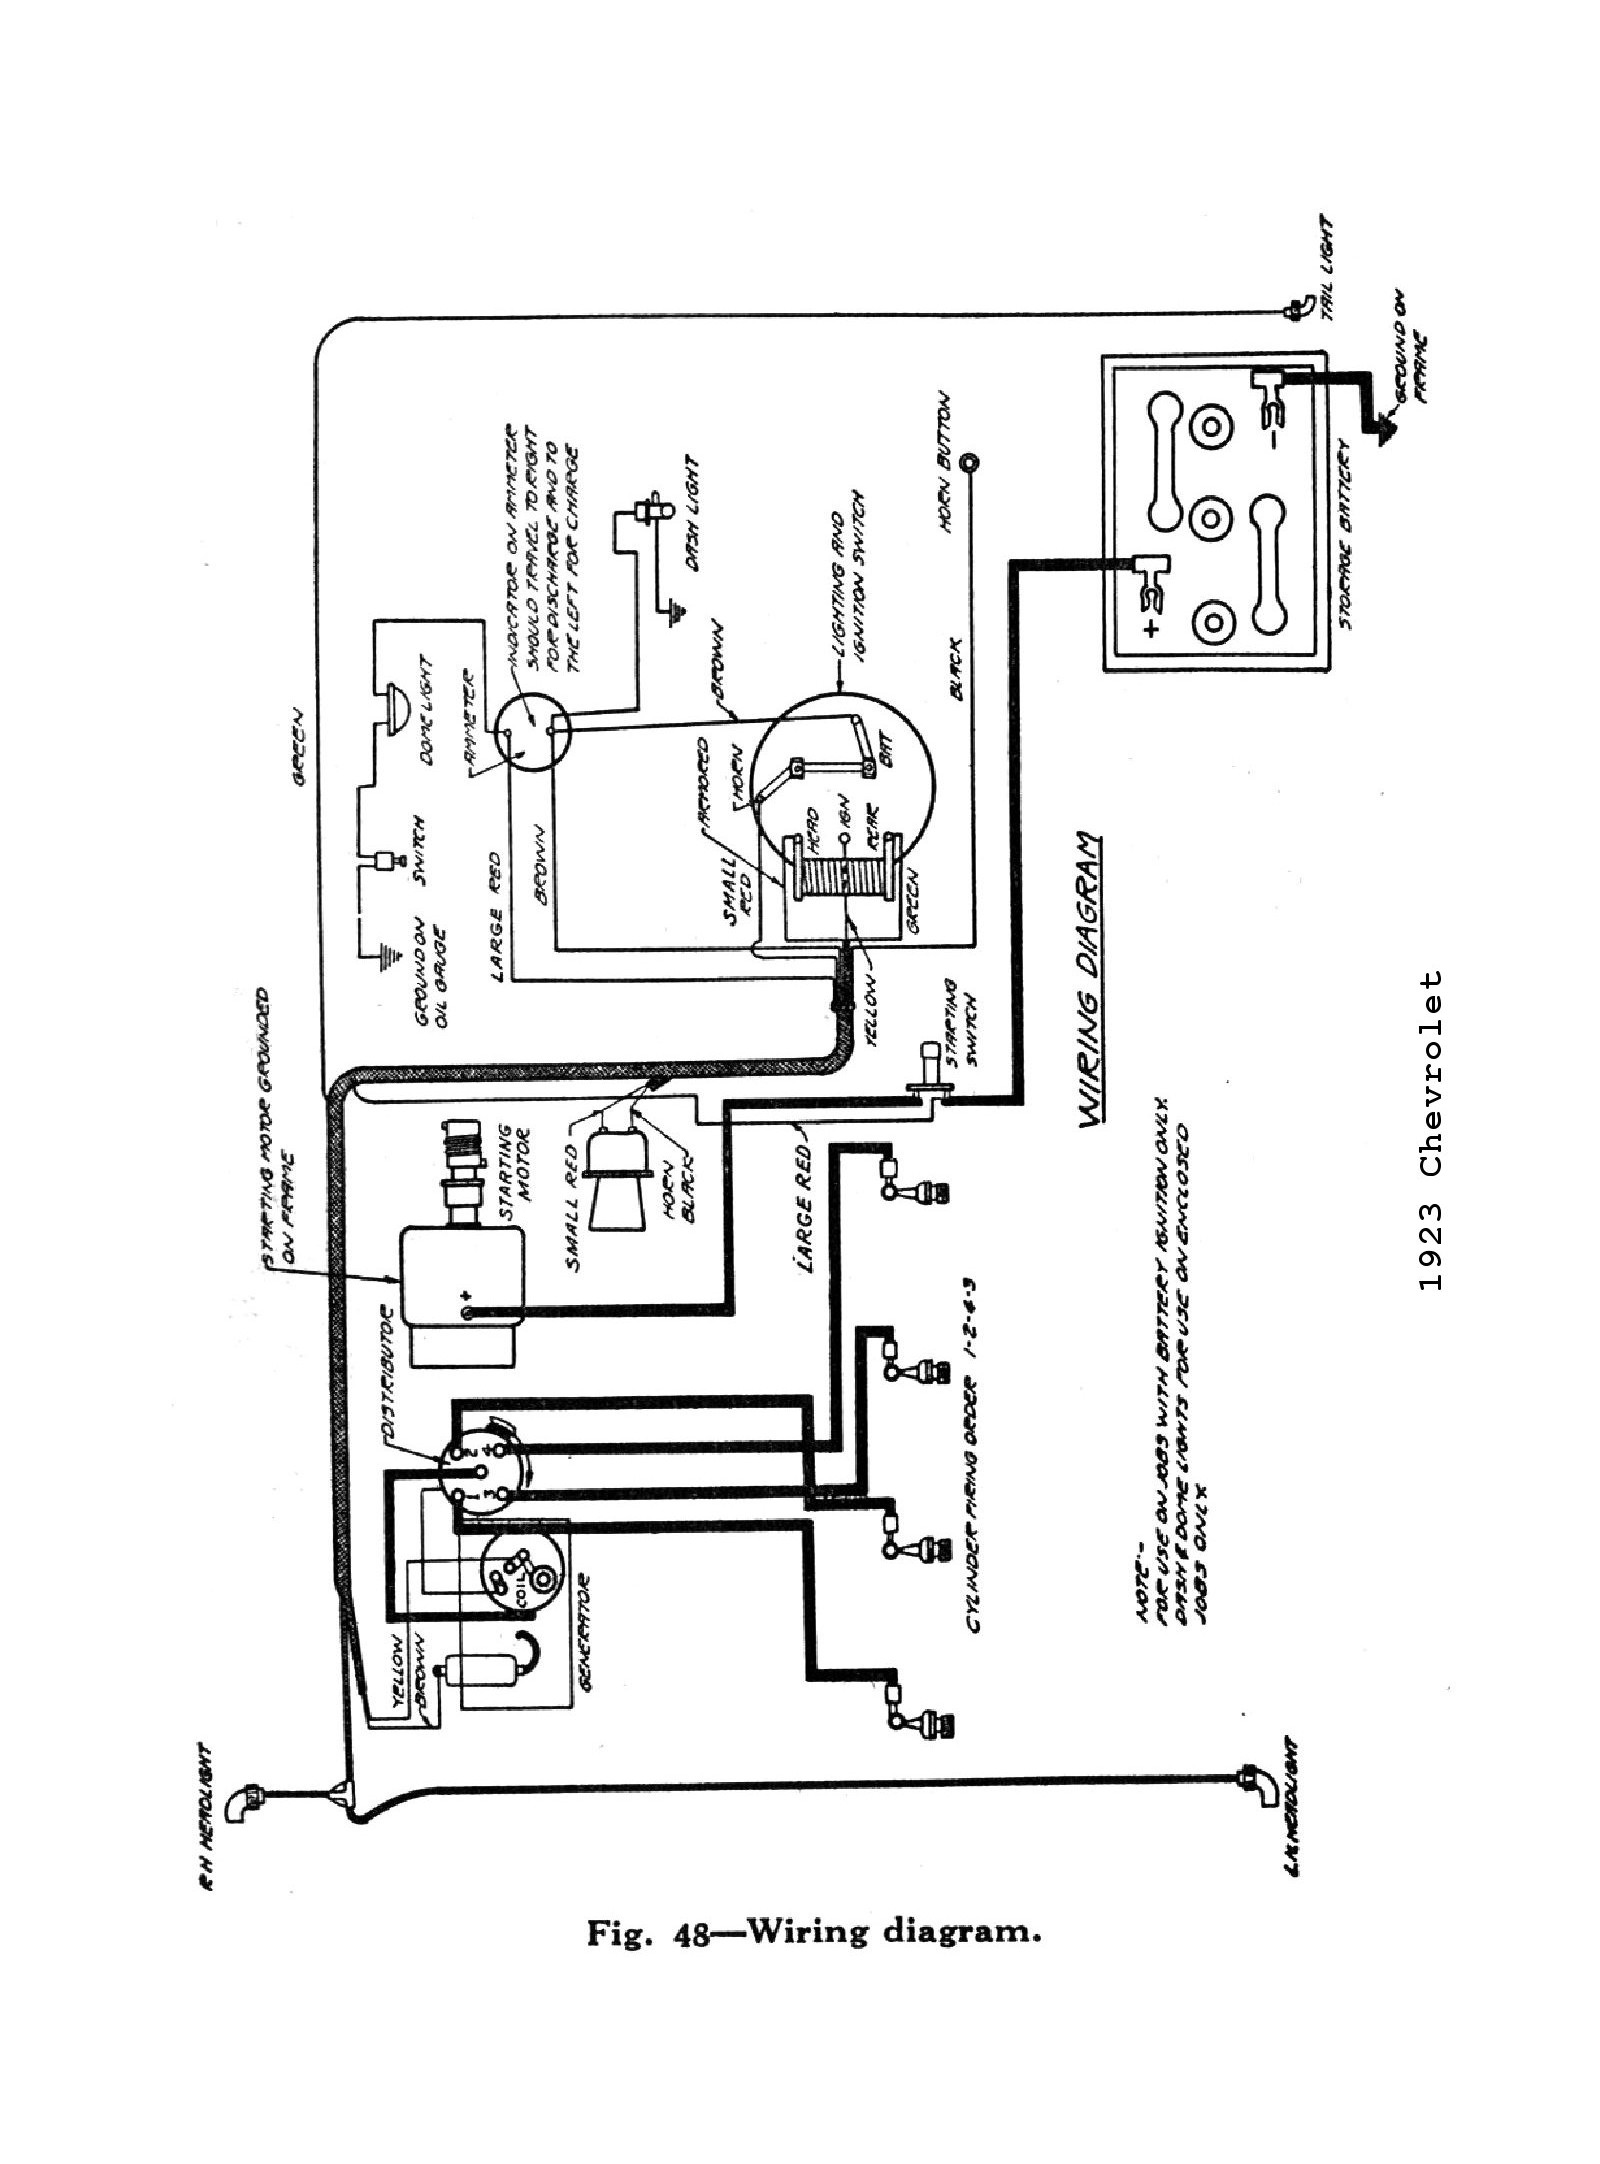 23model diagram of buick lucerne engine wiring library